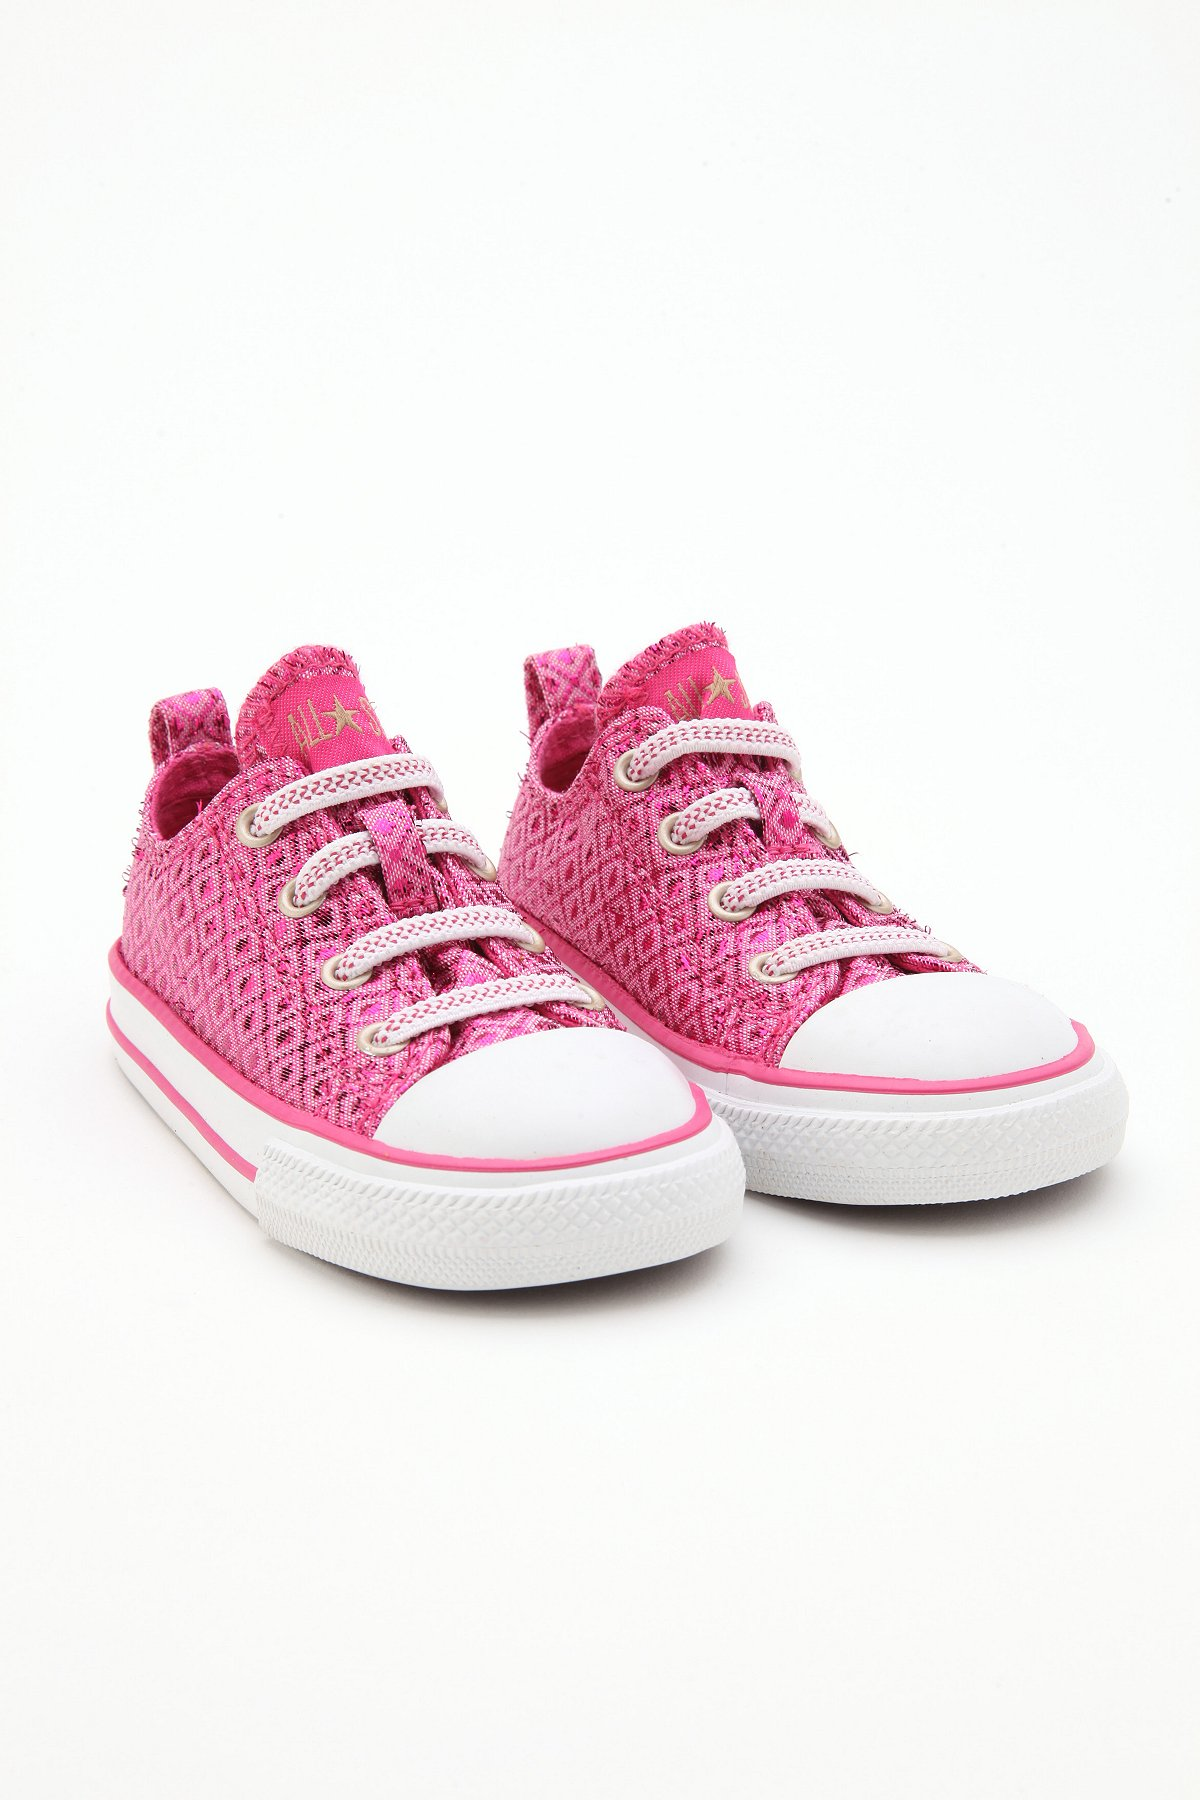 Wee People Toddler Tinsel Chucks